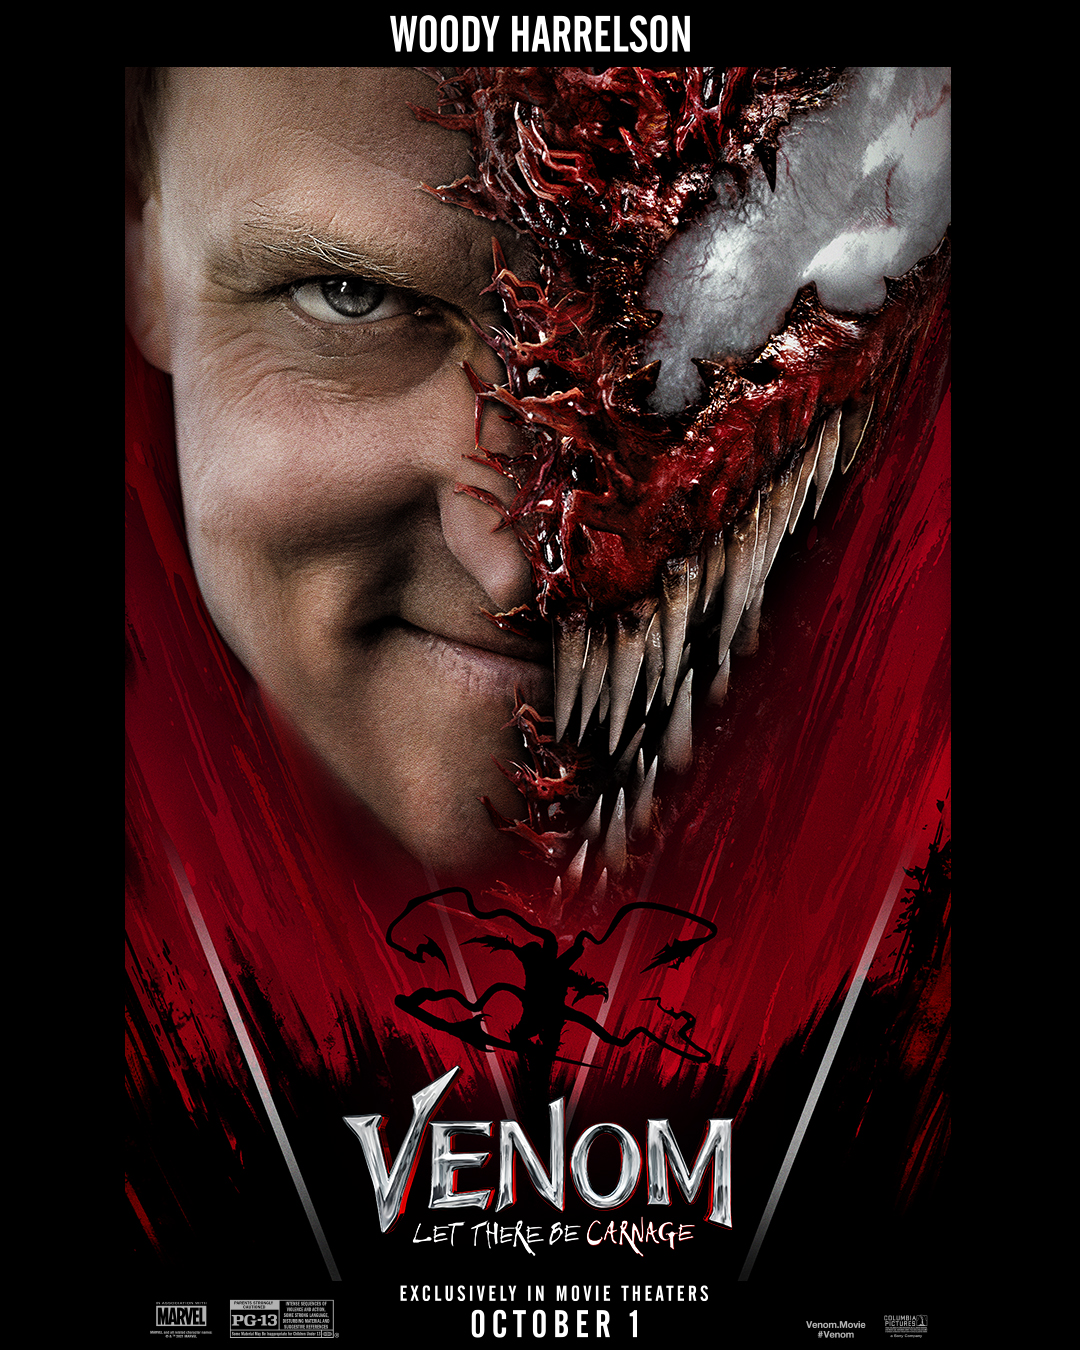 Cletus Kasady/Carnage (Woody Harrelson) en póster de Venom: Let There Be Carnage (2021). Imagen: Sony Pictures Twitter (@SonyPictures).